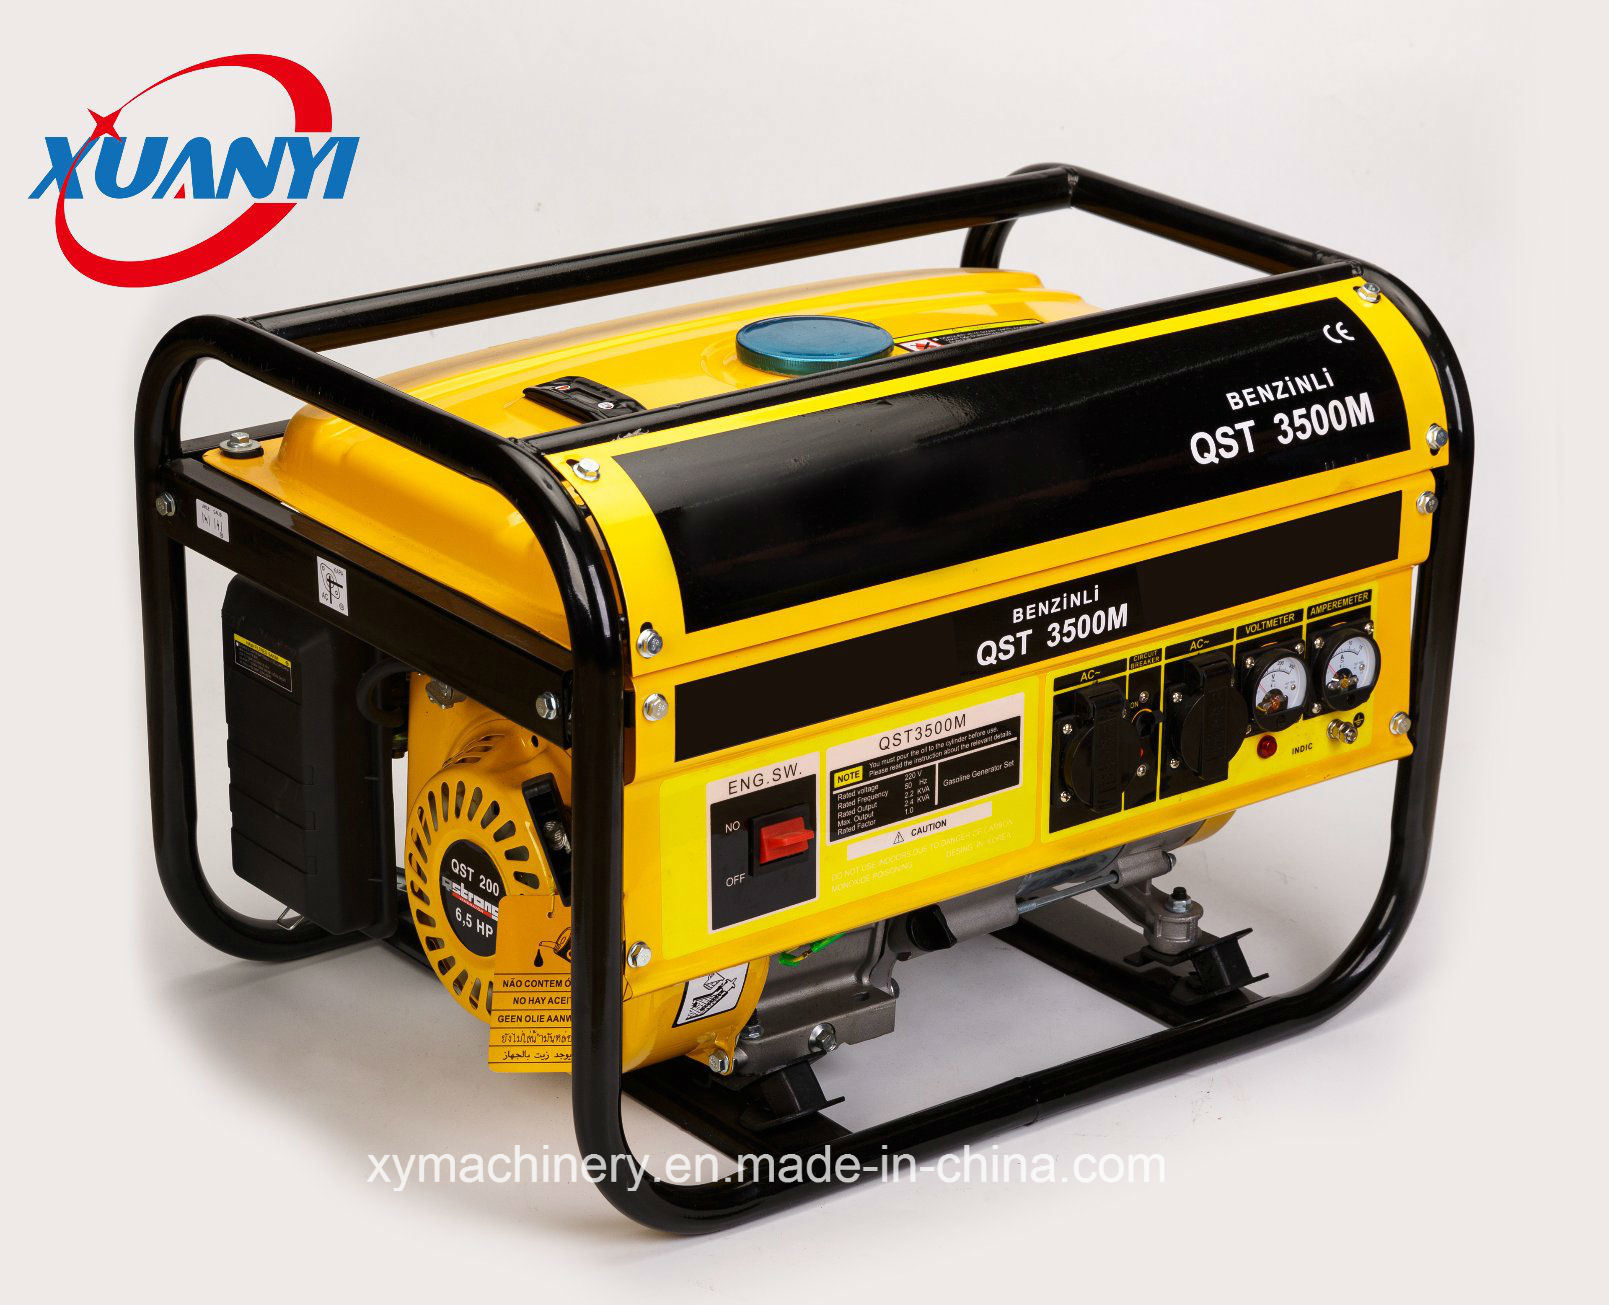 High Quality 2500W 7HP 100% Copper Wire Electric Start Petrol/Gasoline Generator